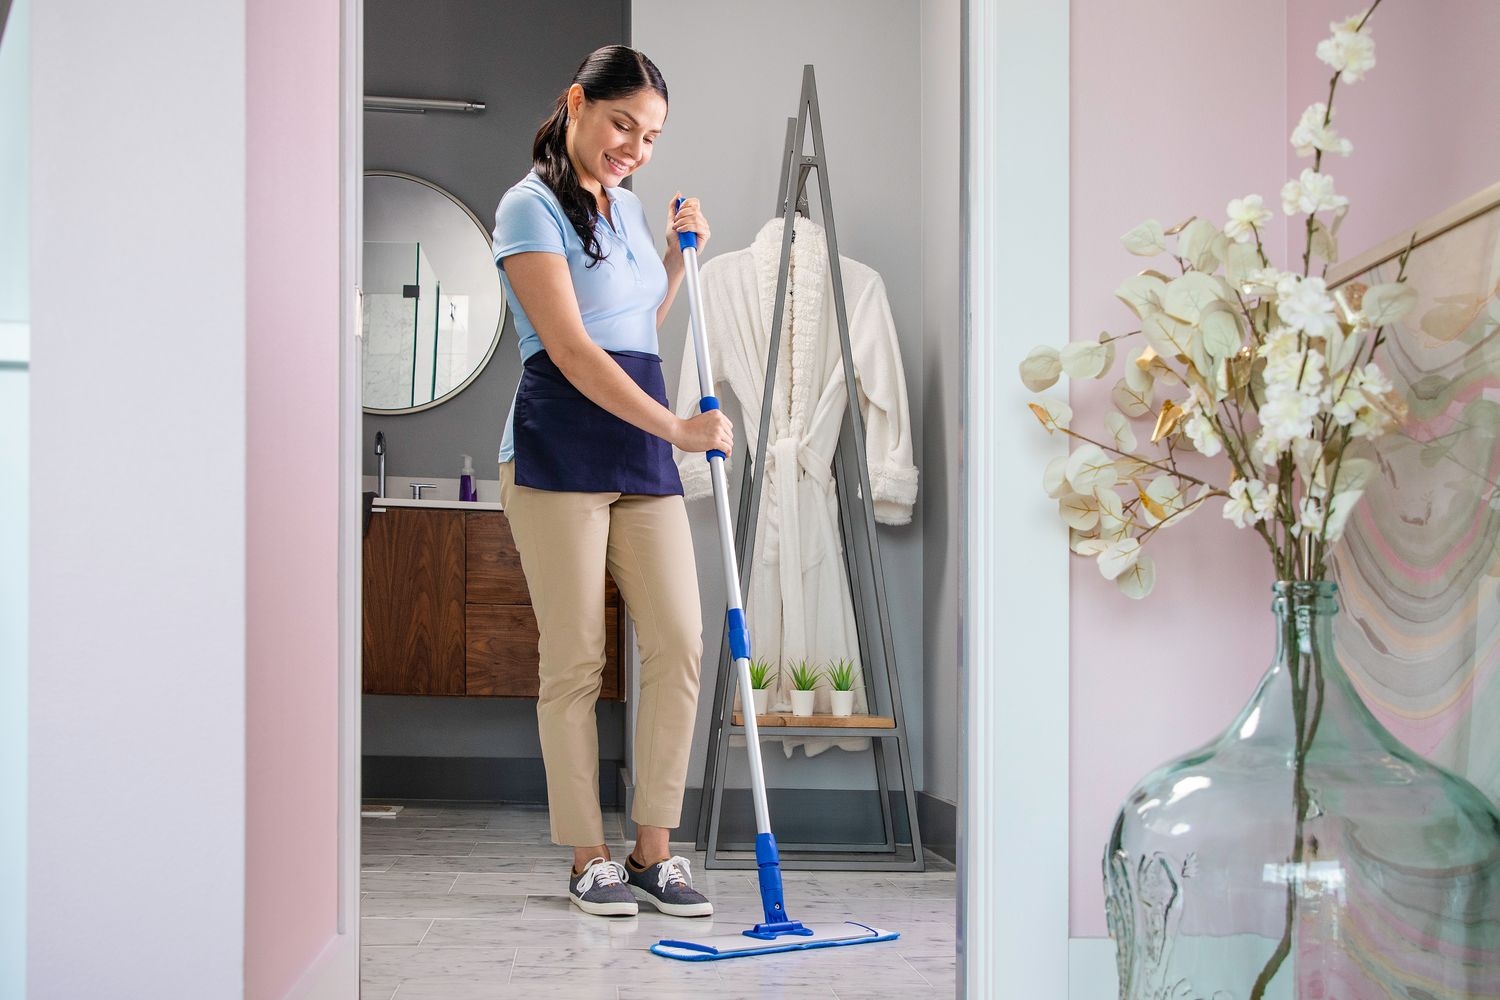 Wet Mop For Tile Floors